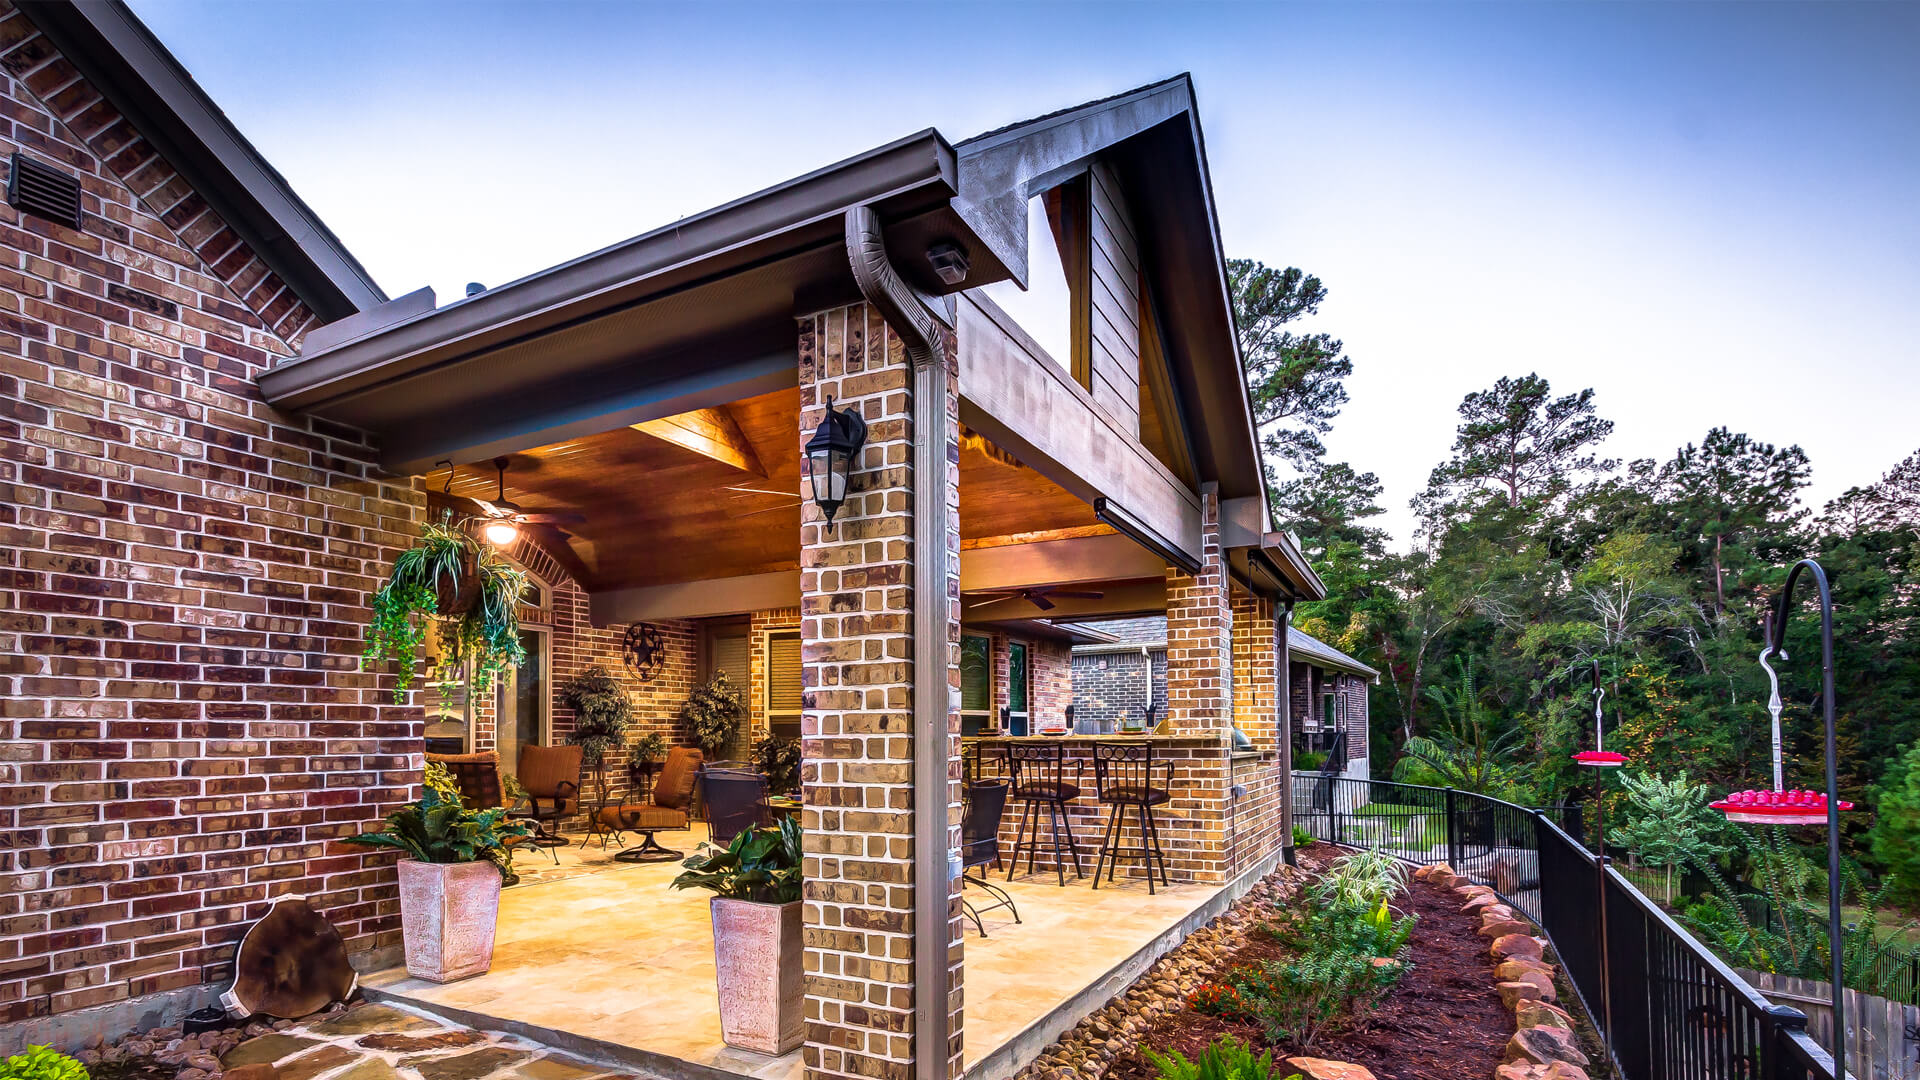 Attached Custom Covered Patio with Summer Kitchen by Creekstone Outdoor Living